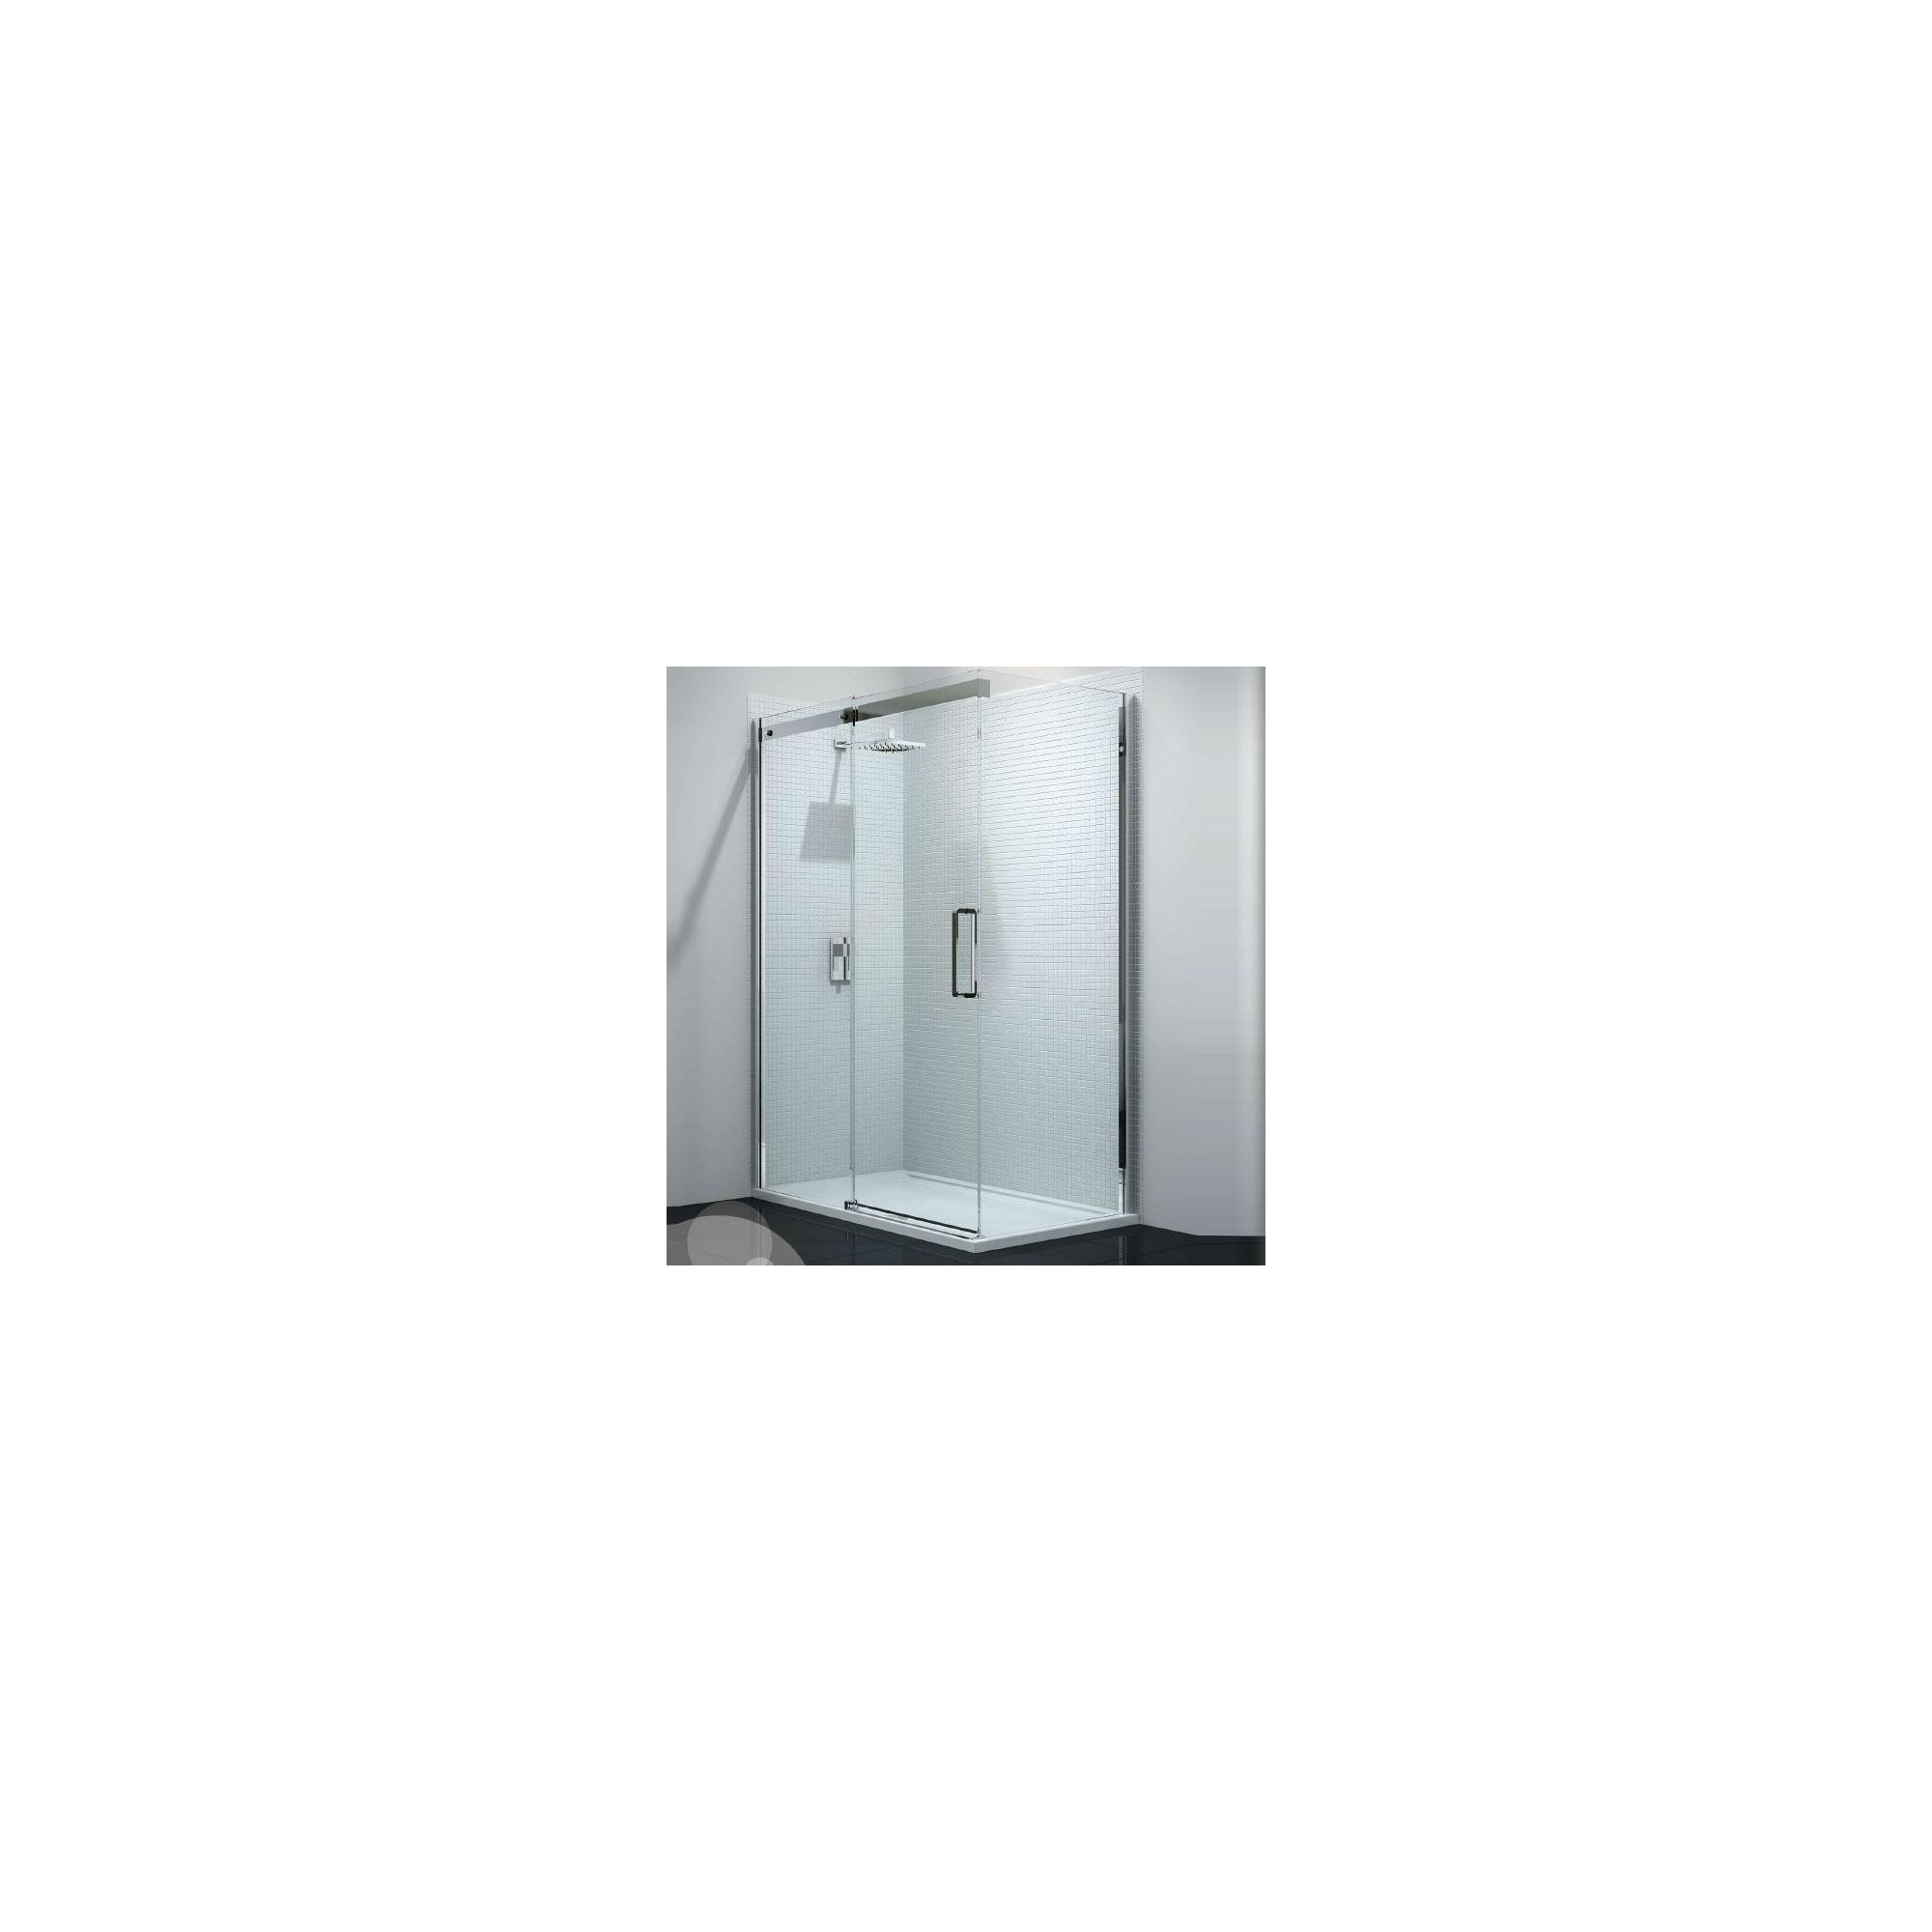 Merlyn Vivid Ten Sliding Shower Door, 1200mm Wide, 10mm Glass at Tesco Direct